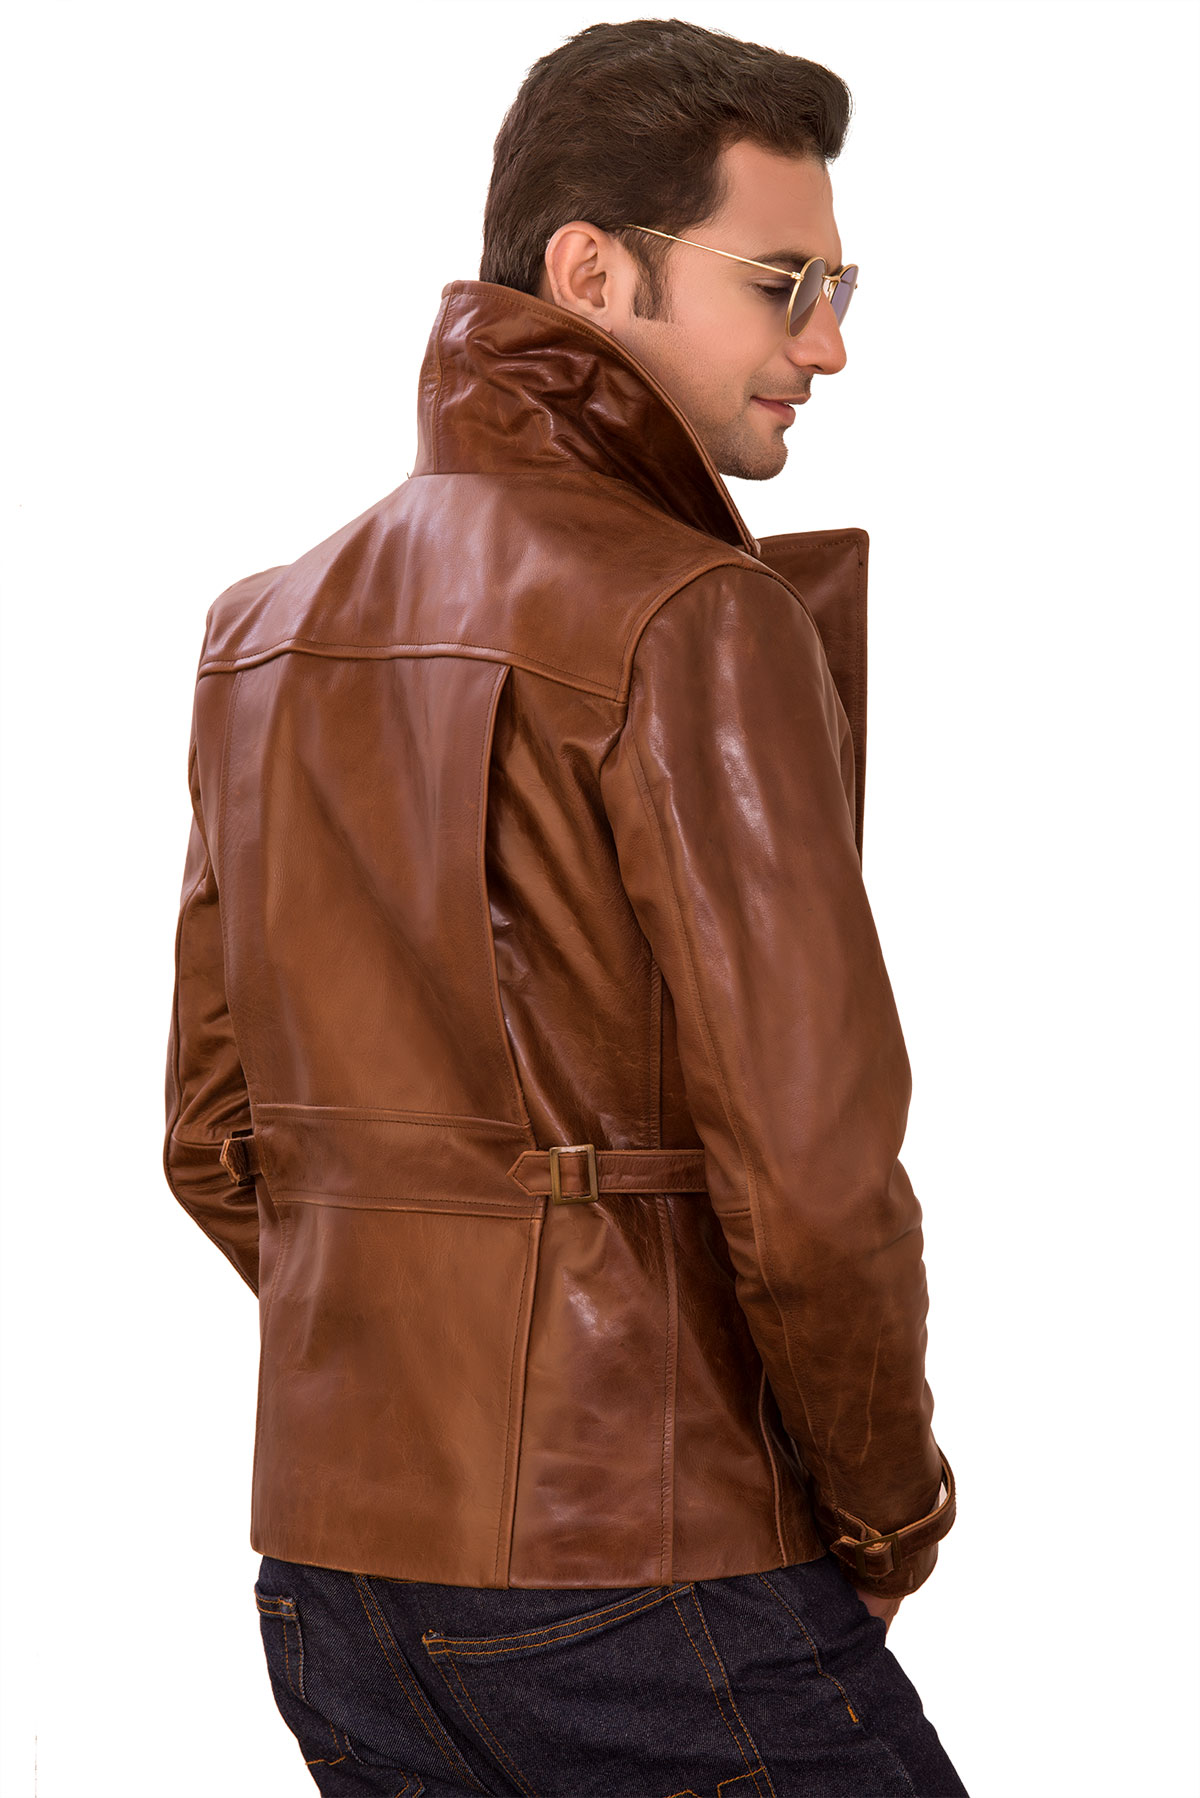 mens brown leather jacket outfit ideas